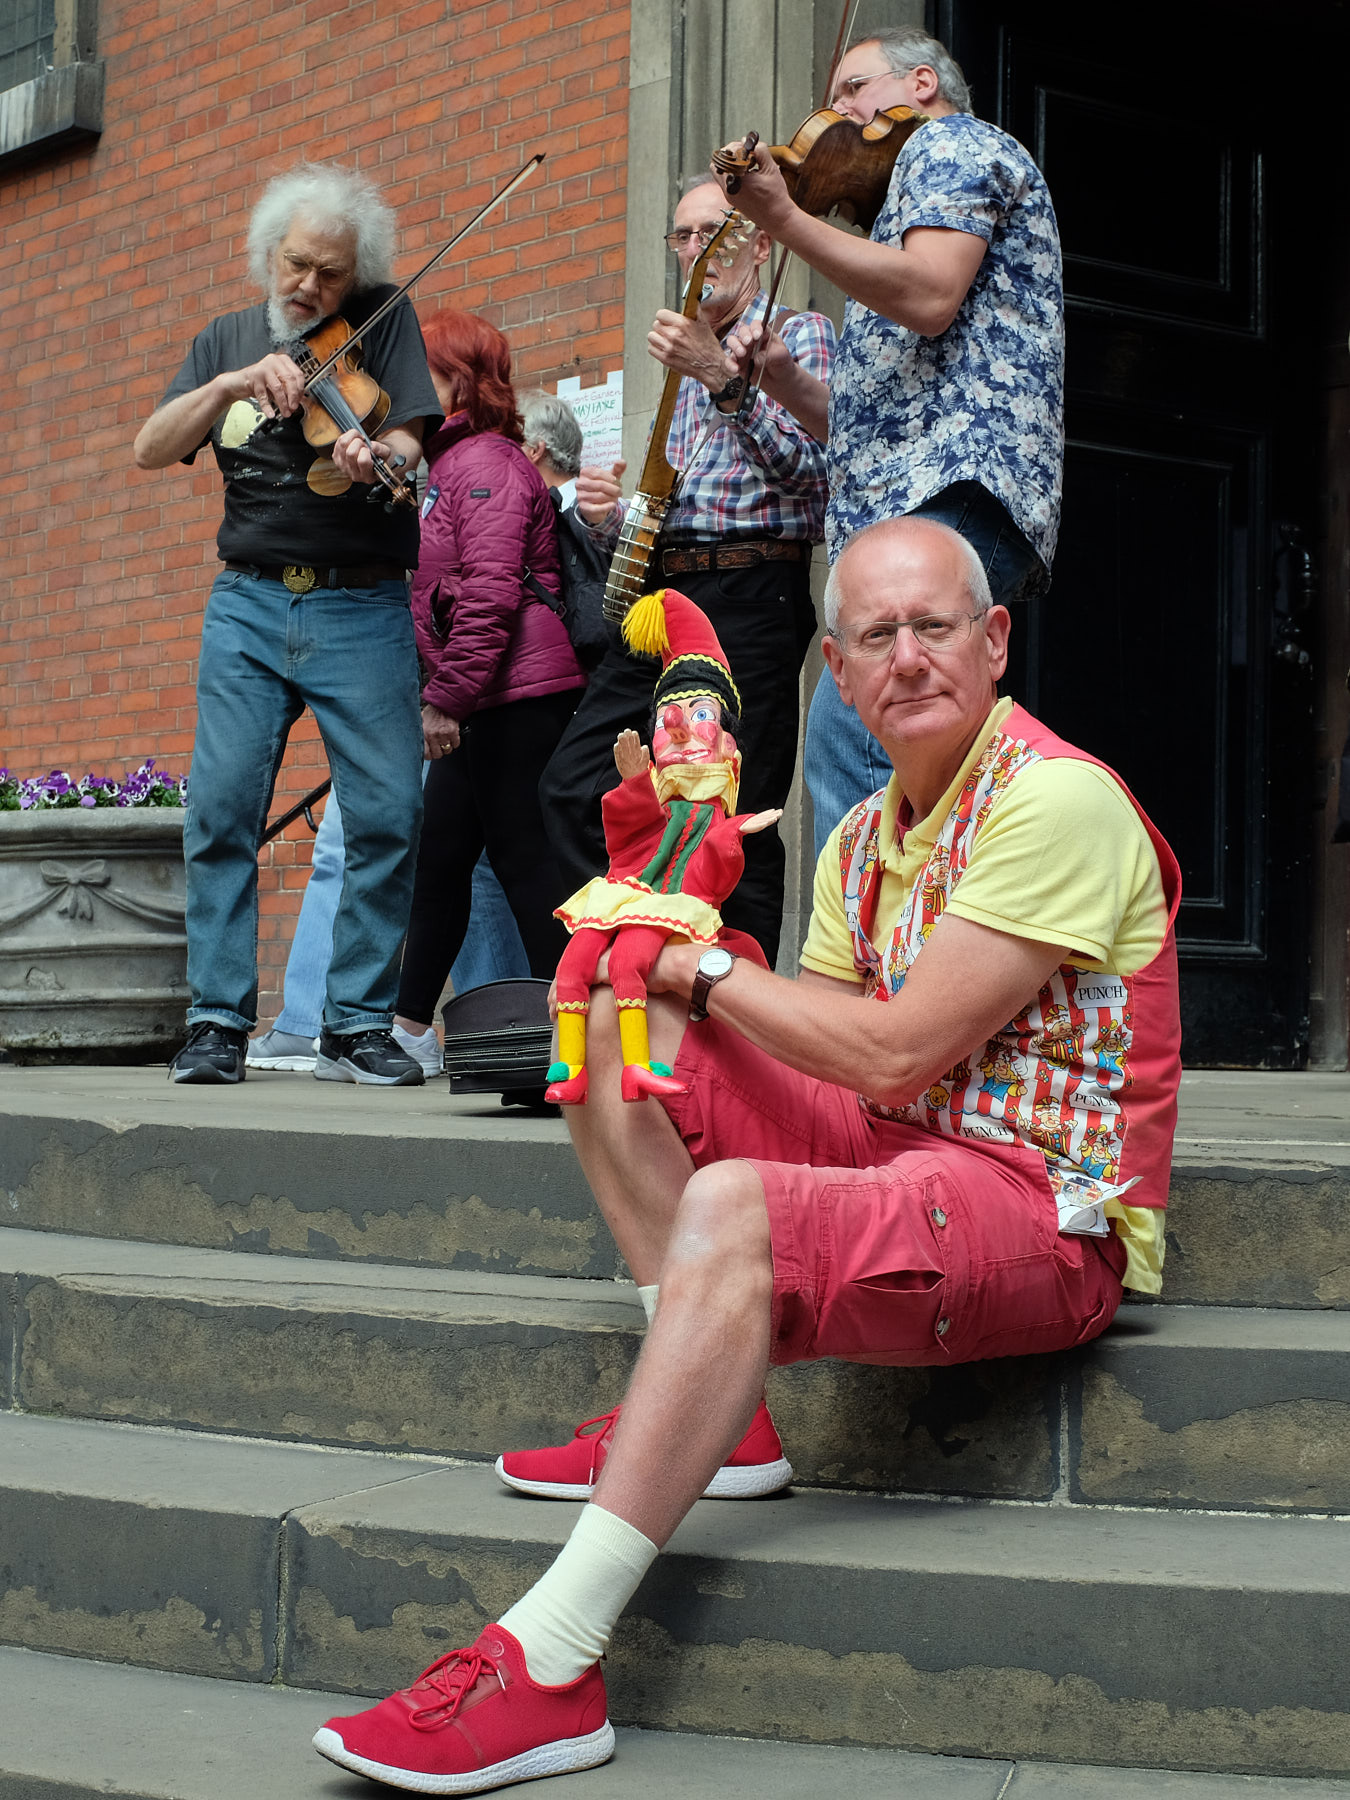 A puppeteer poses with Mr. Punch while The Lost Marbles string band shred behind him.